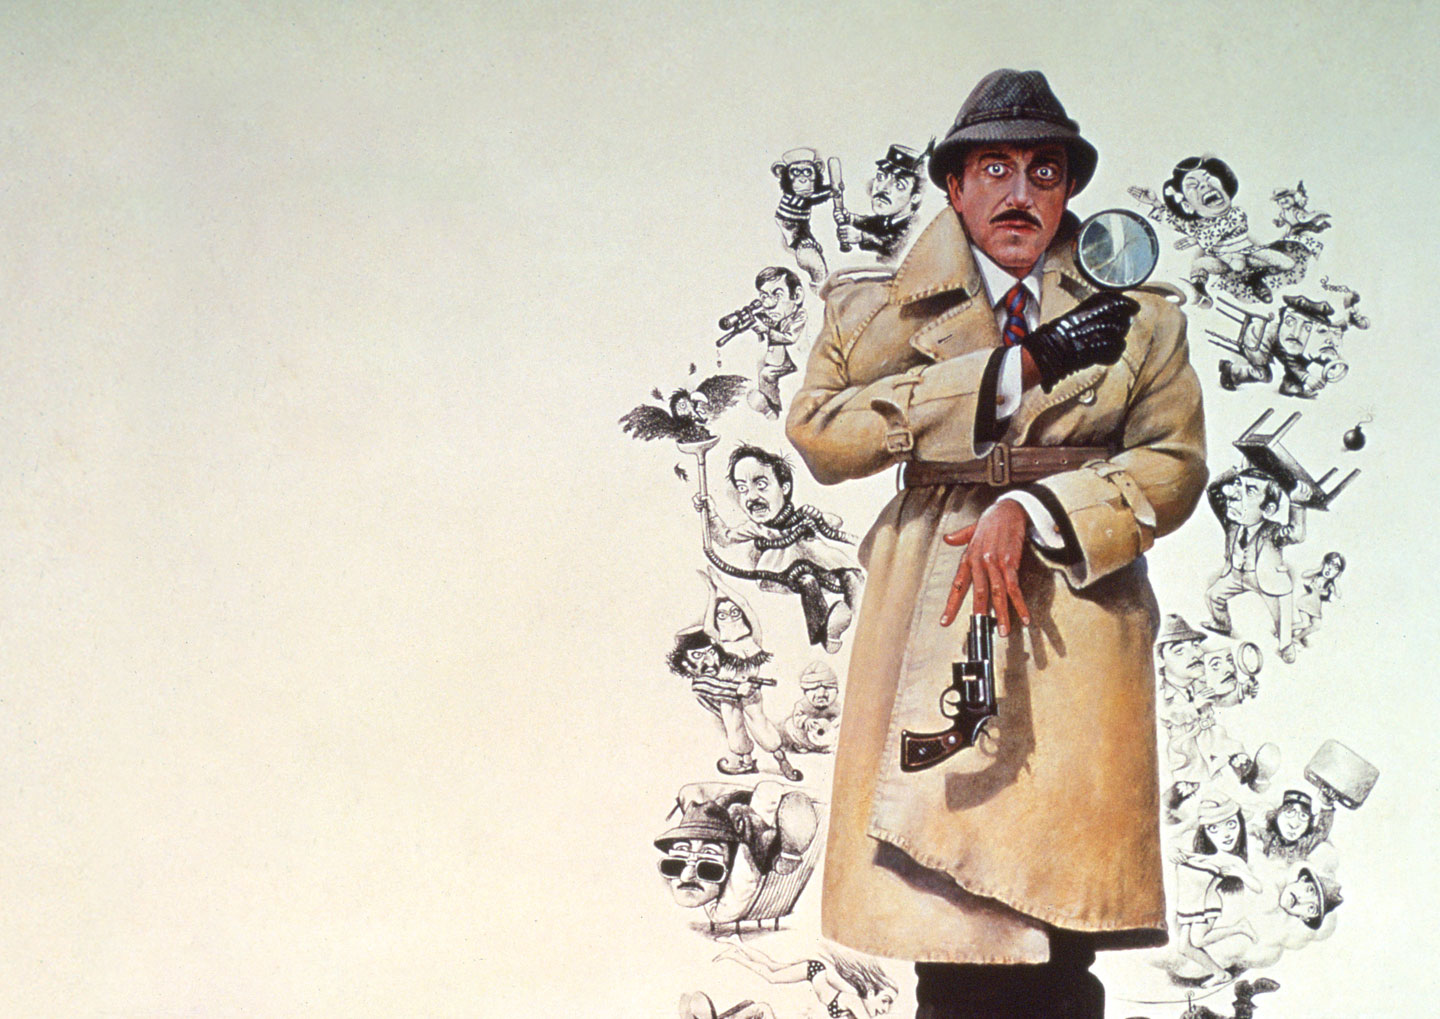 The Return Of The Pink Panther header image